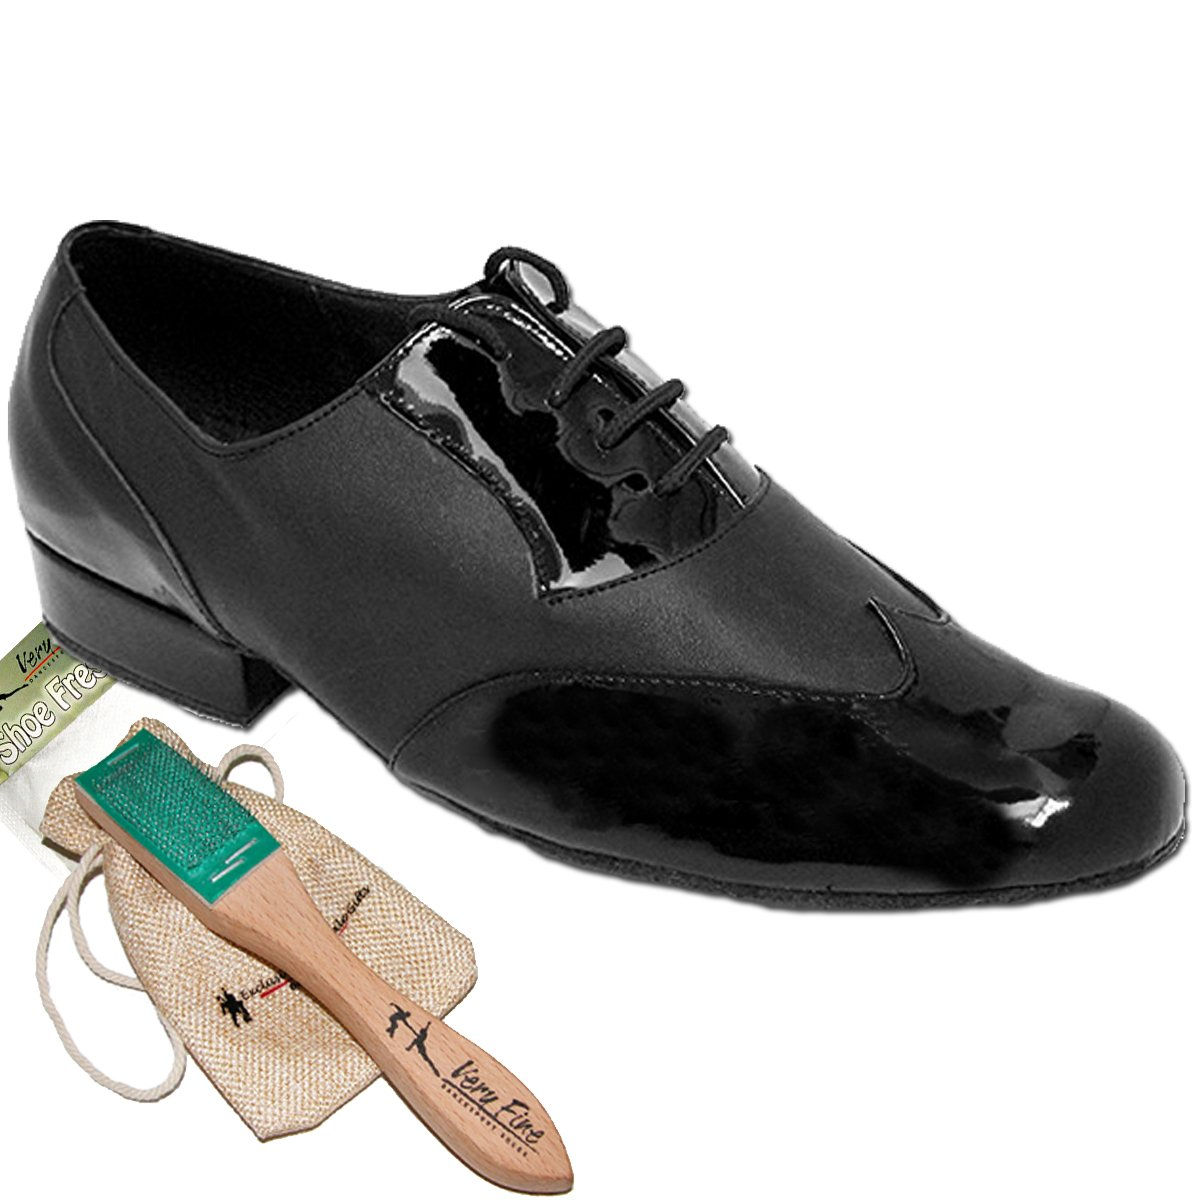 Mens Ballroom Dance Shoes Standard & Smooth Tango Wedding Salsa Shoes Black Patent & Black Leather M100101EB Comfortable - Very Fine 1'' Heel 11 M US [Bundle of 5]